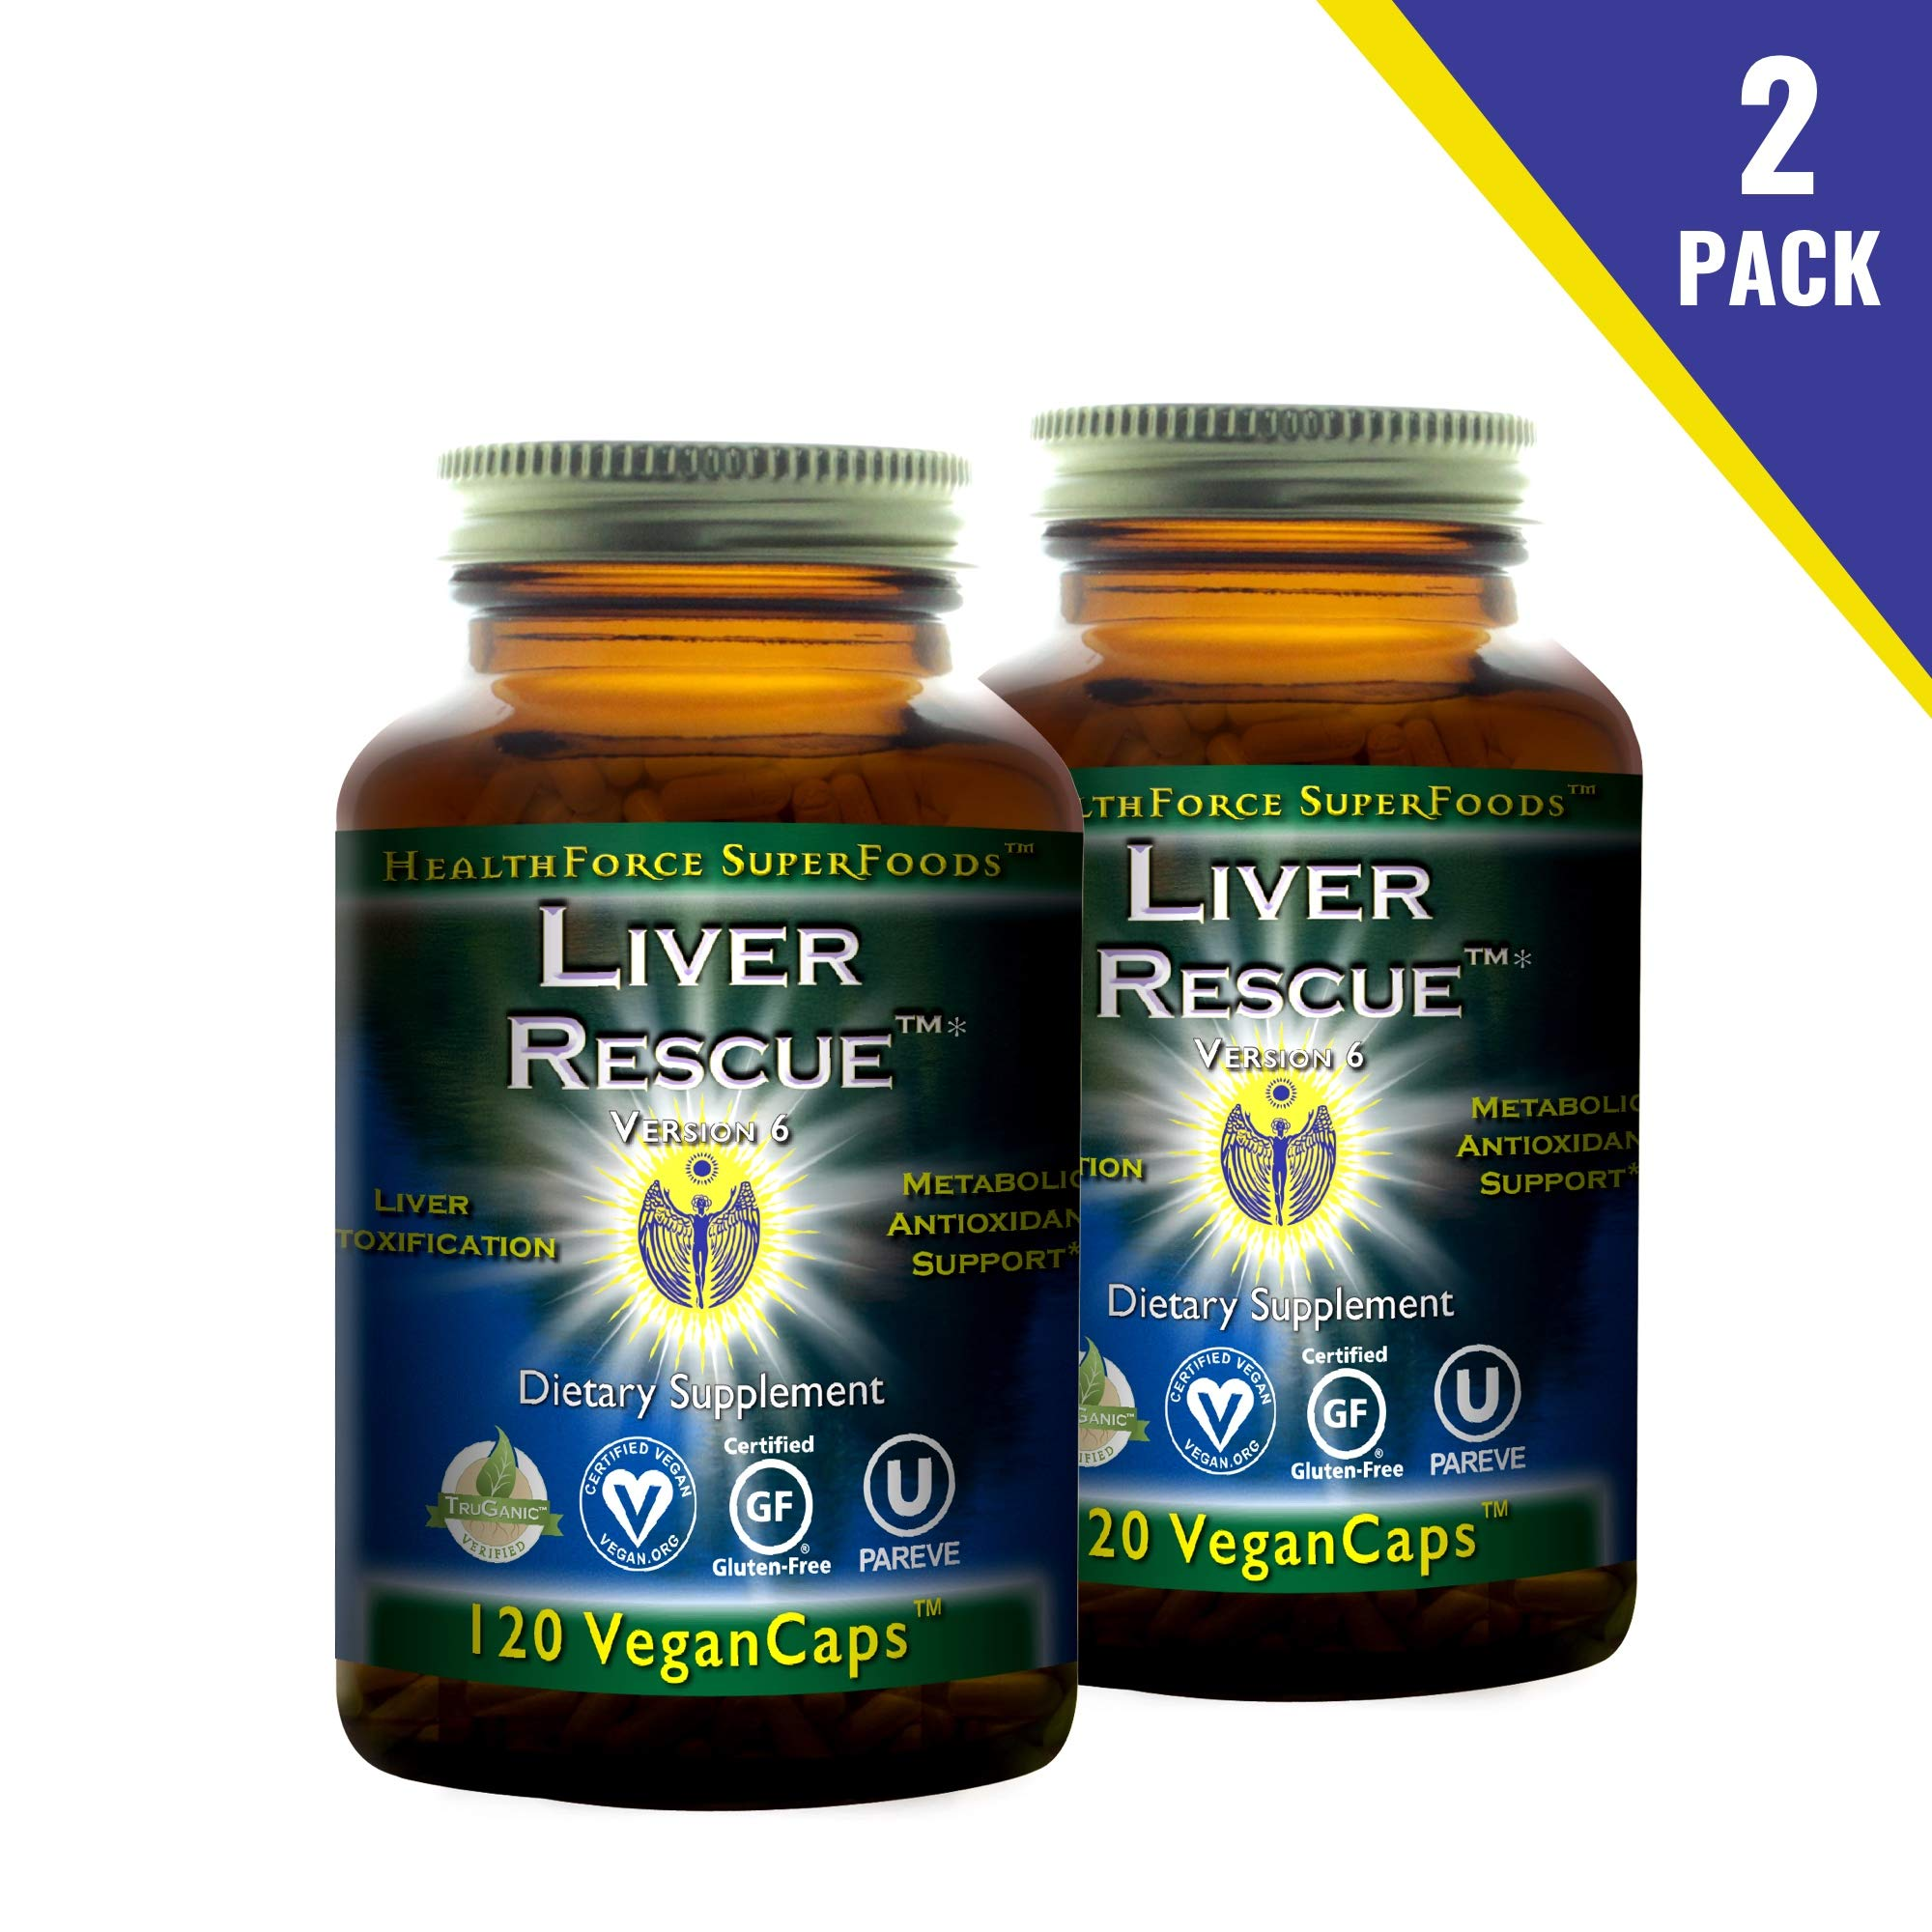 HealthForce SuperFoods Liver Rescue (2 Pack) - 120 Vegan Capsules - All Natural Liver Detoxifier with Milk Thistle & Dandelion Root - Organic, Gluten Free - 120 Total Servings